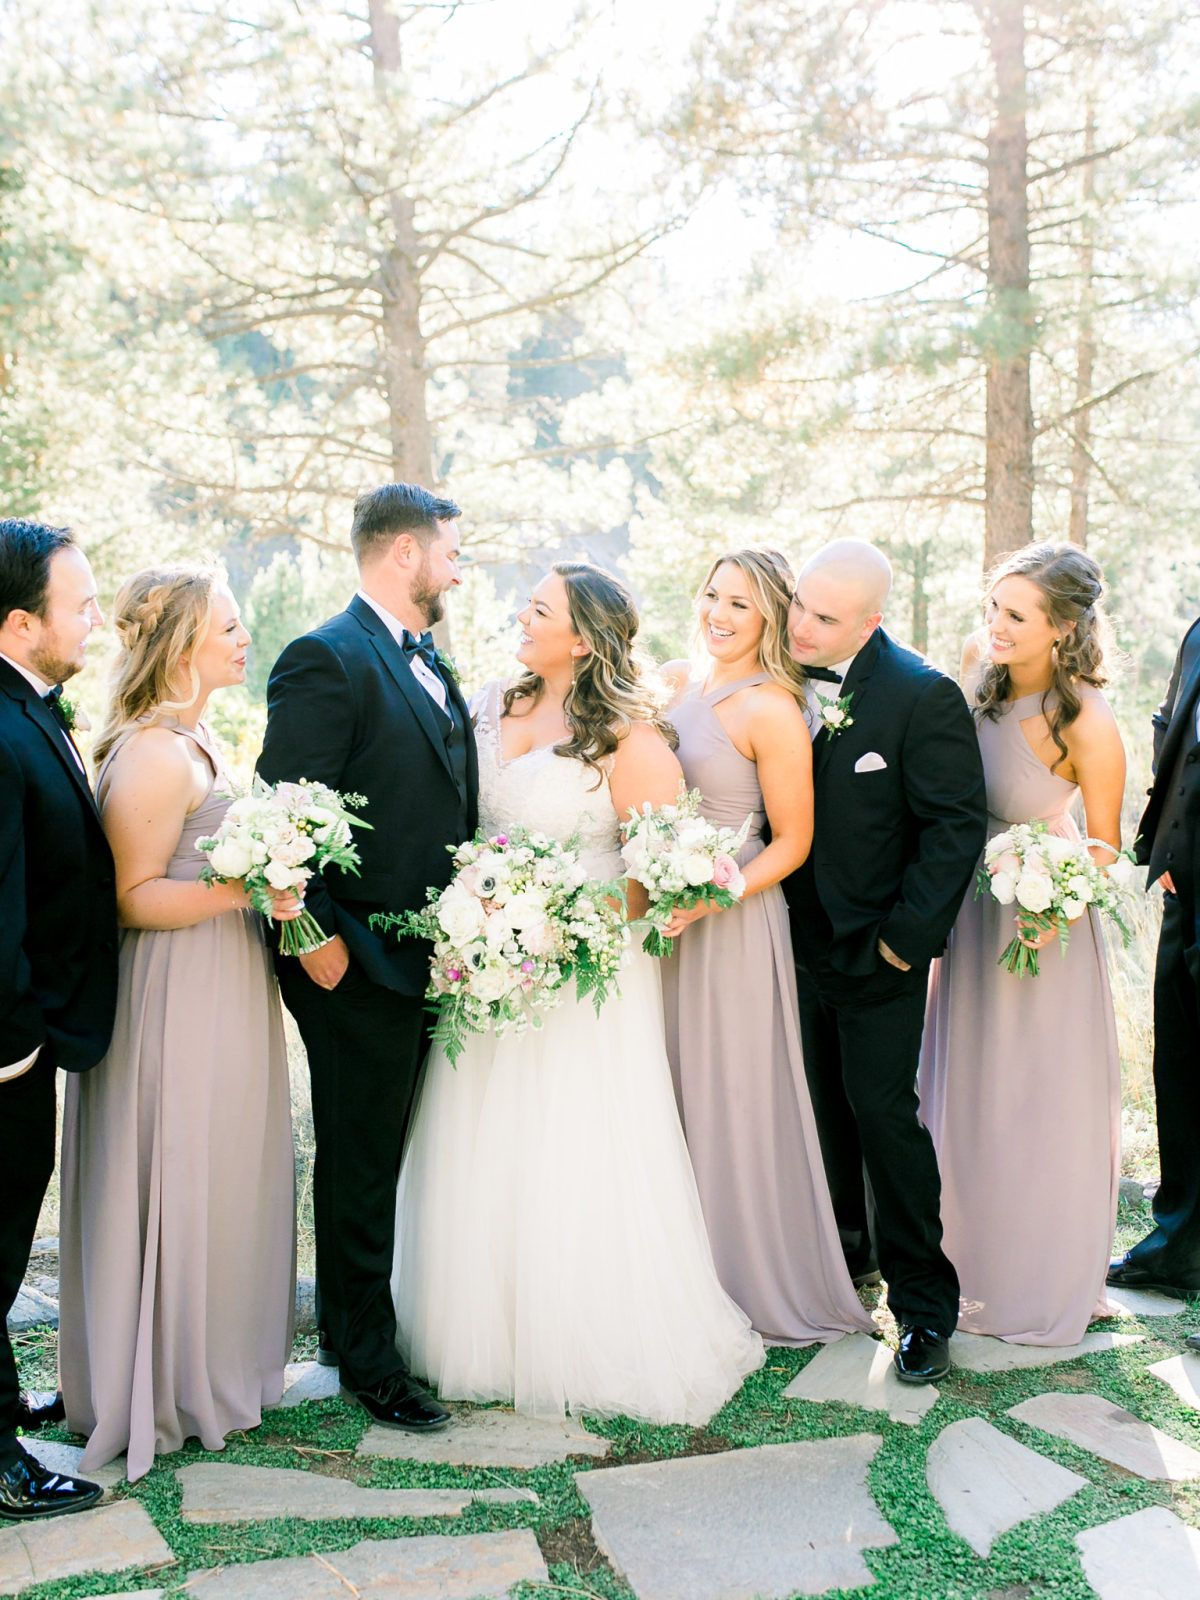 This al fresco dancing pines wedding is a breath of fresh air